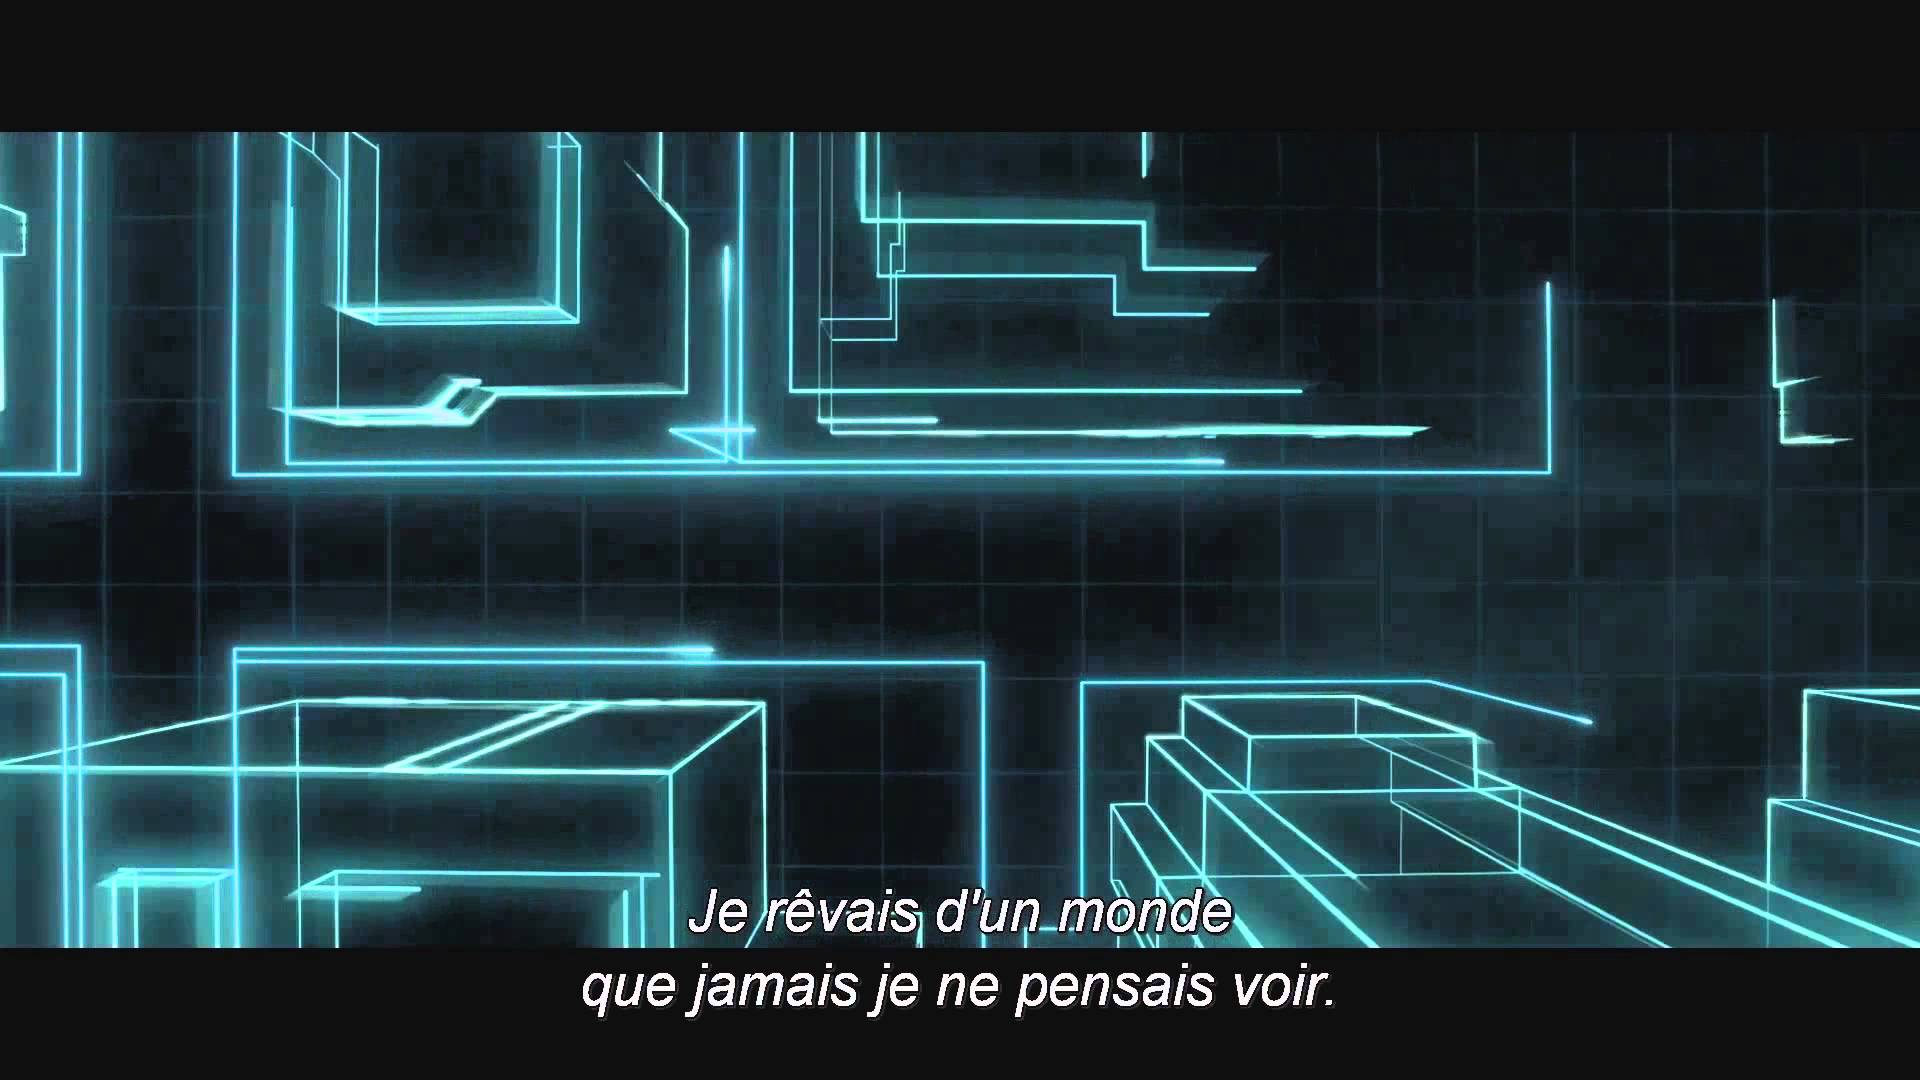 tron grid wallpapers - wallpaper cave